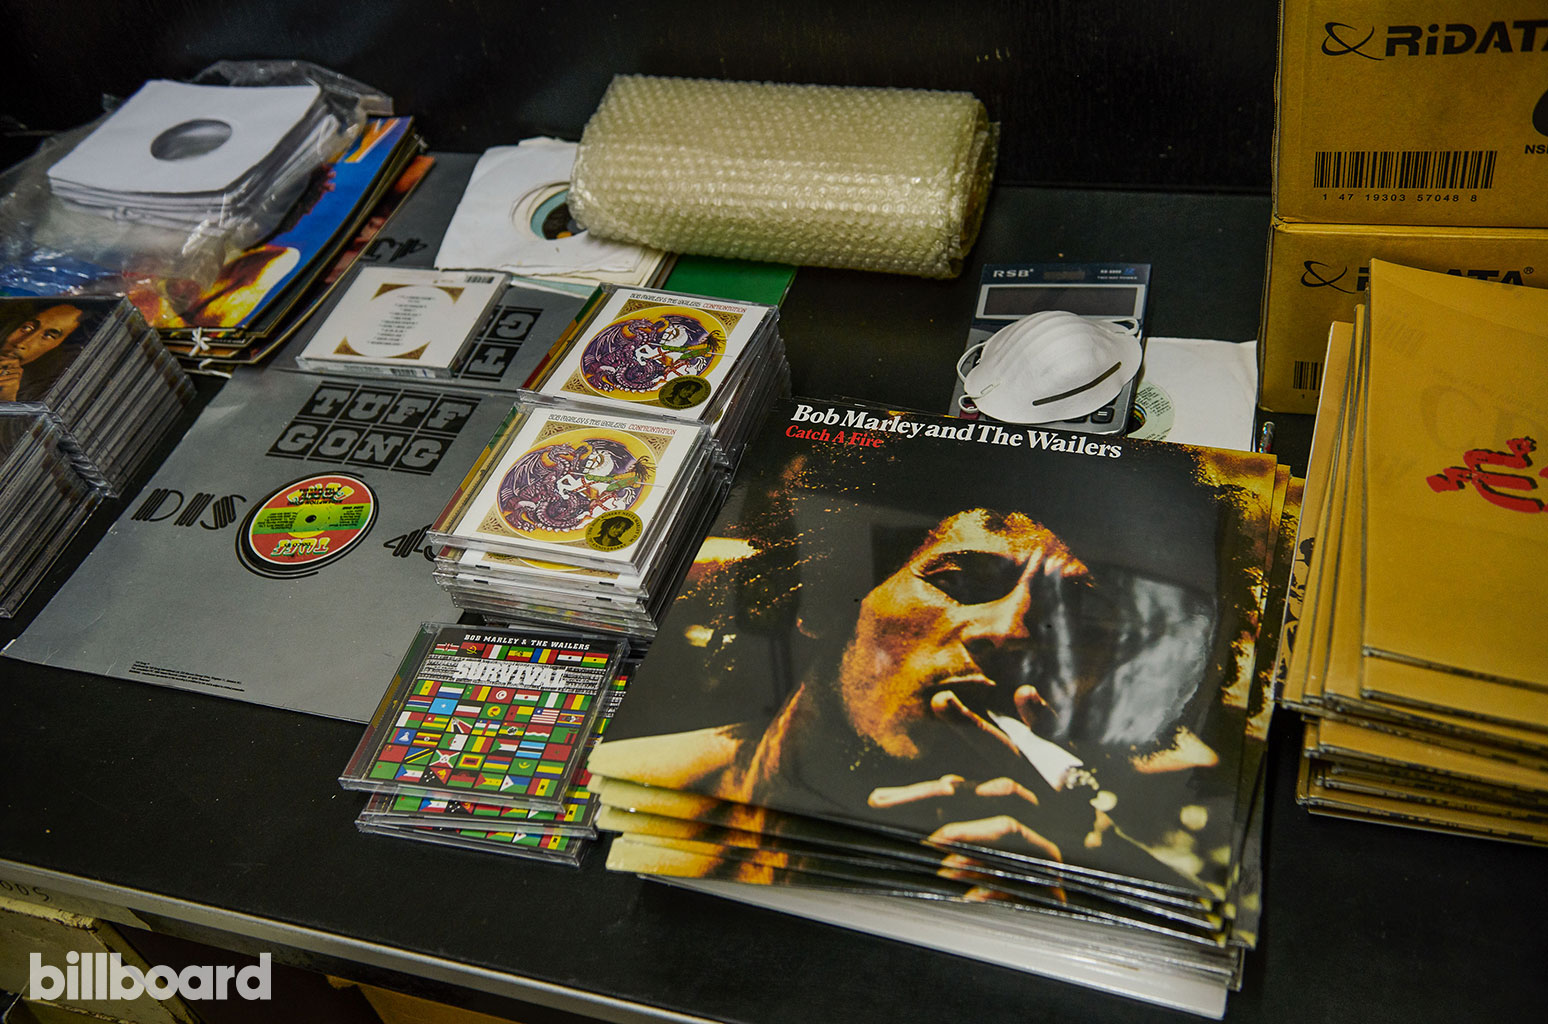 Tuff Gong Records in Kingston